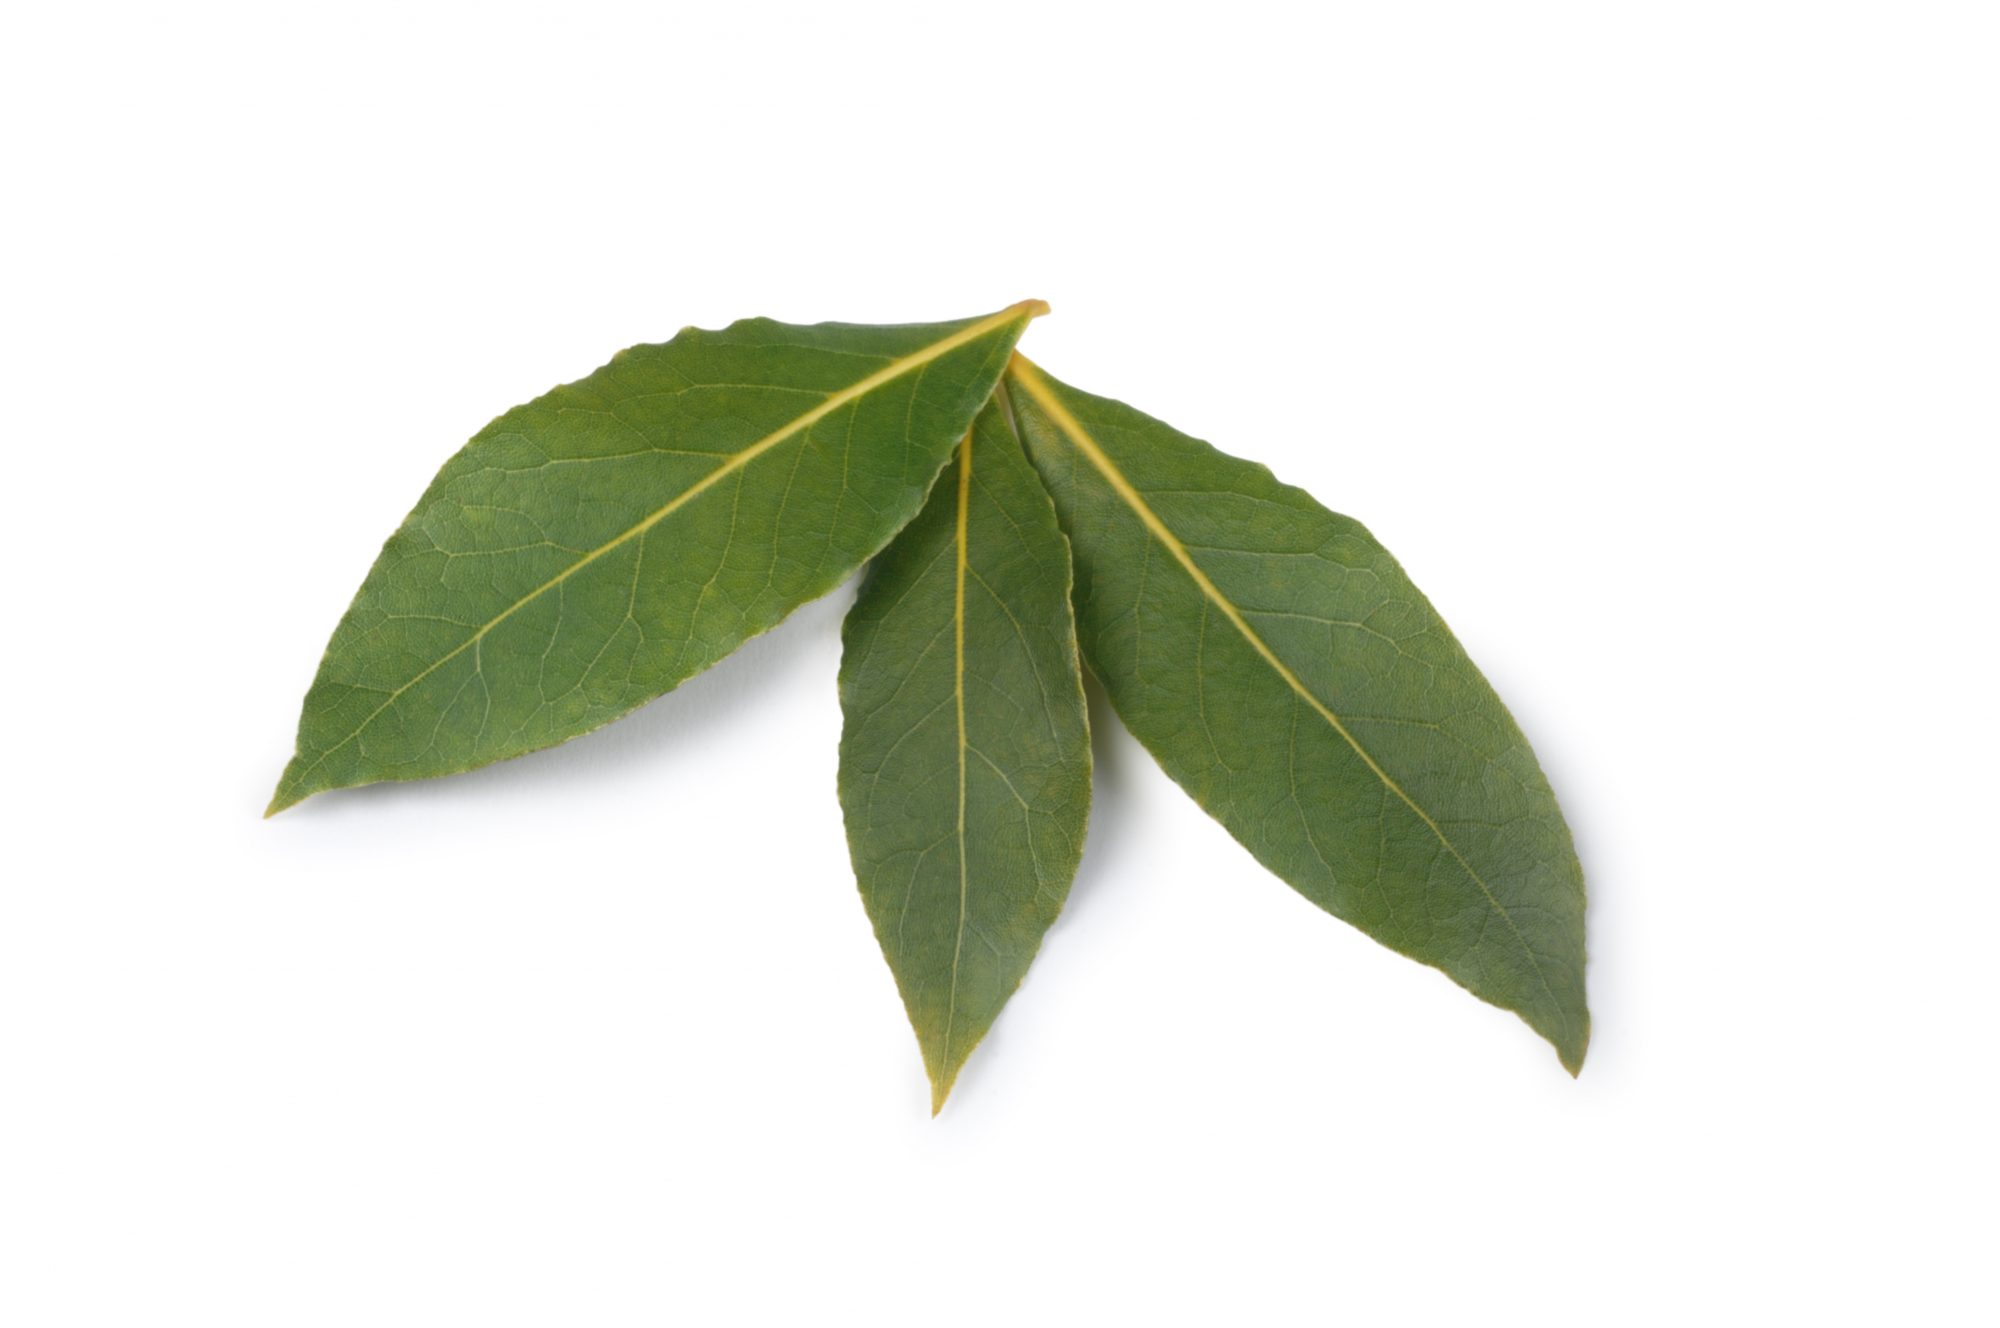 Bay Leaves On White Getty 1/27/20